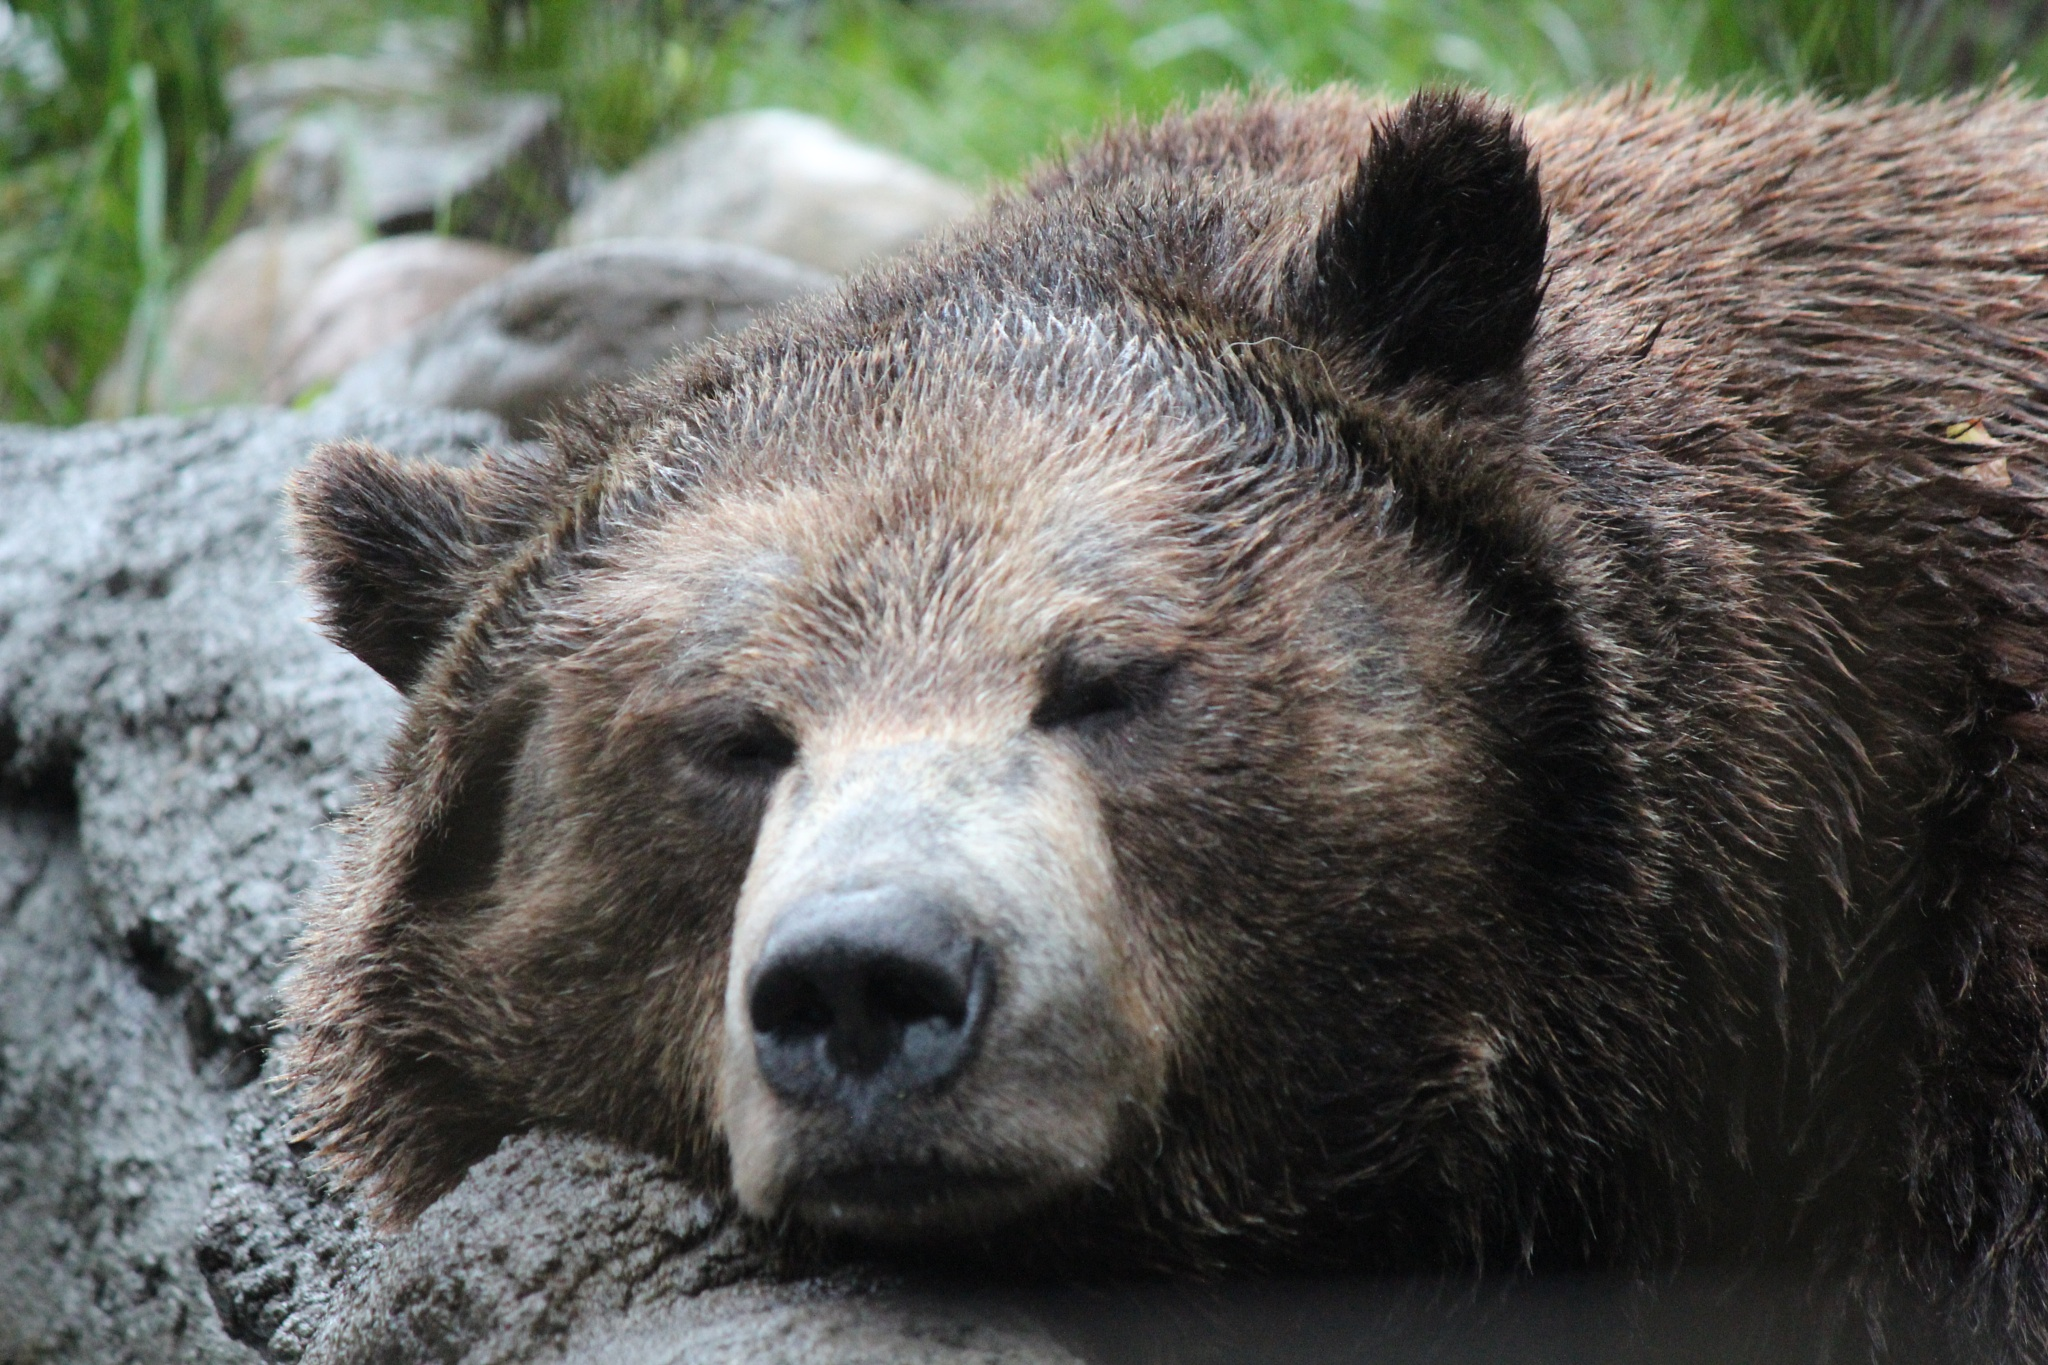 Snoozing Grizzly by danlandry69